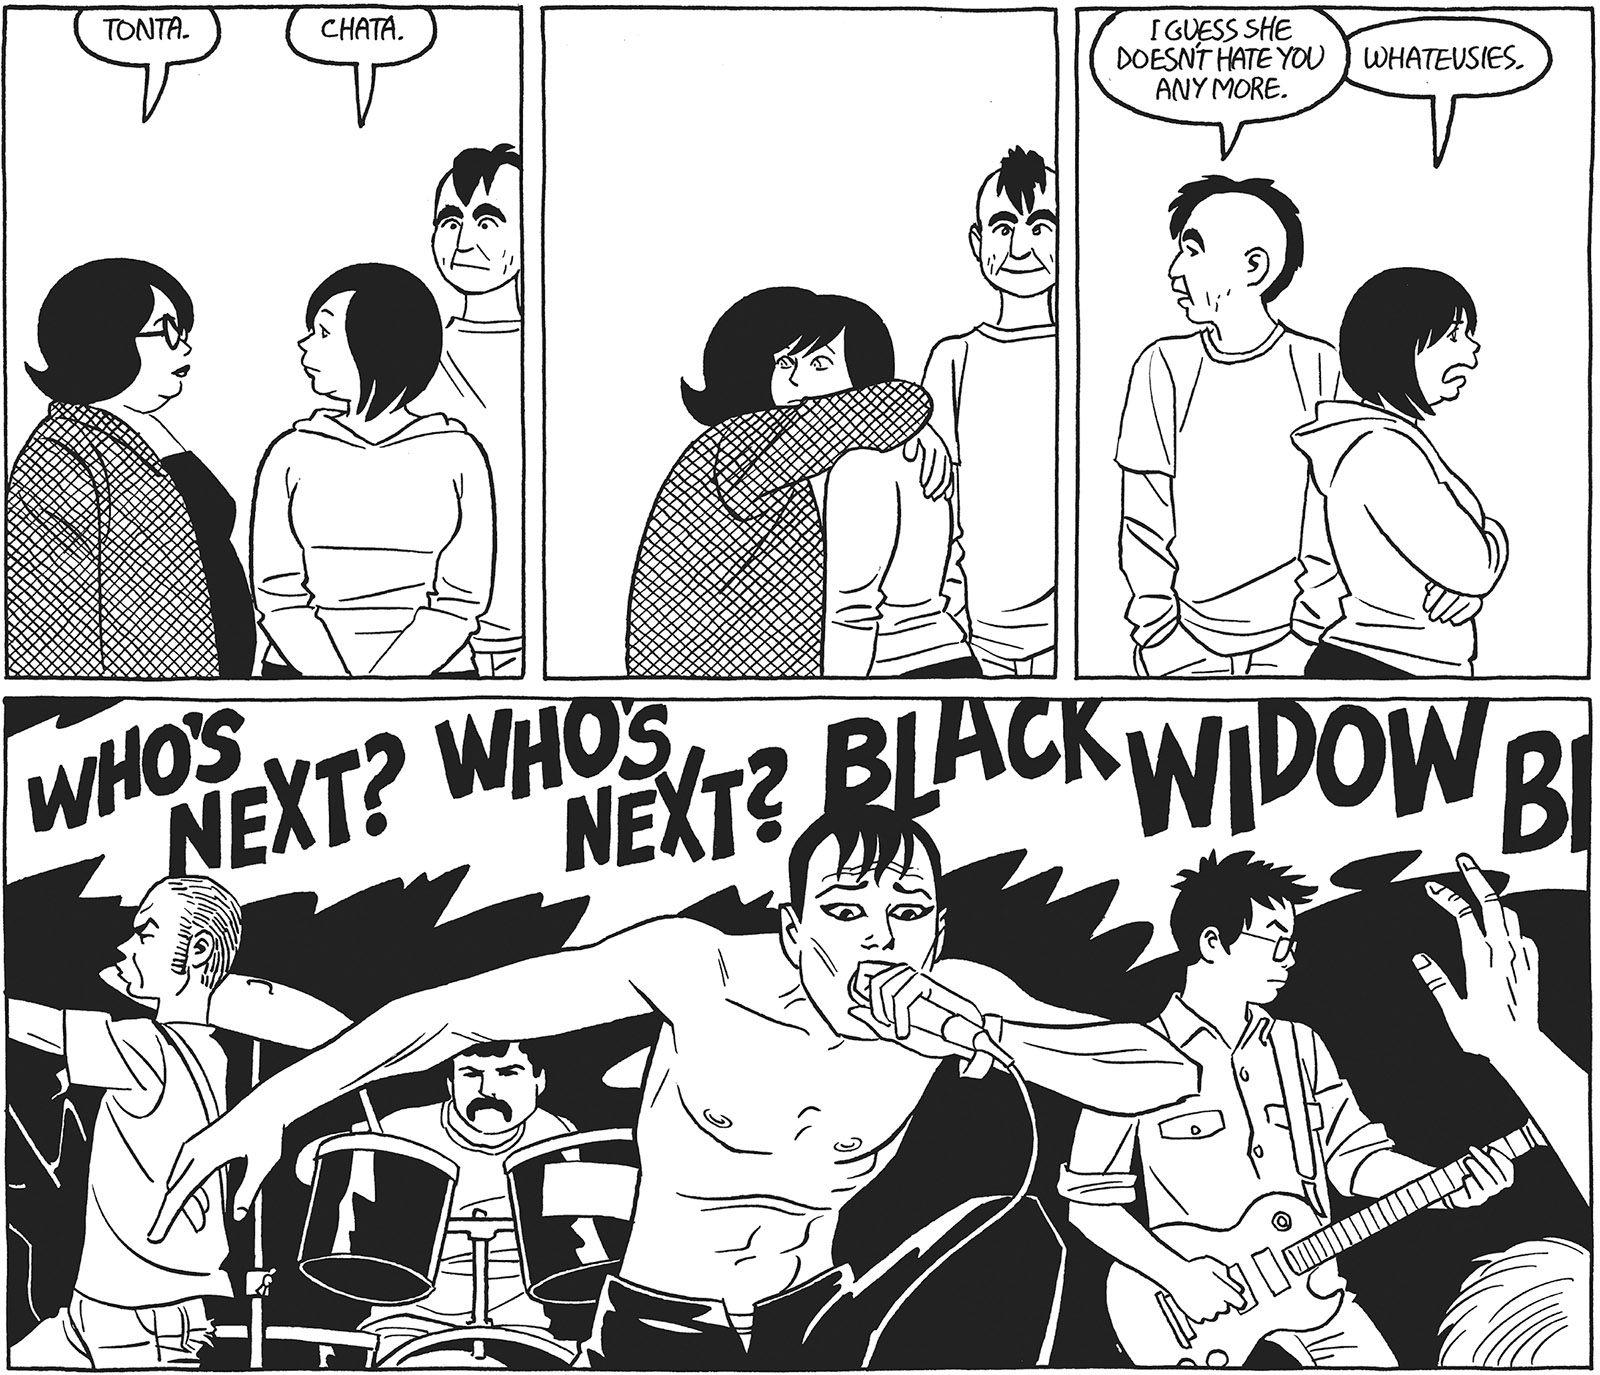 Tonta and her friends Chata and Moses at a performance by her favorite punk band; from Hernandez's graphic novel Tonta